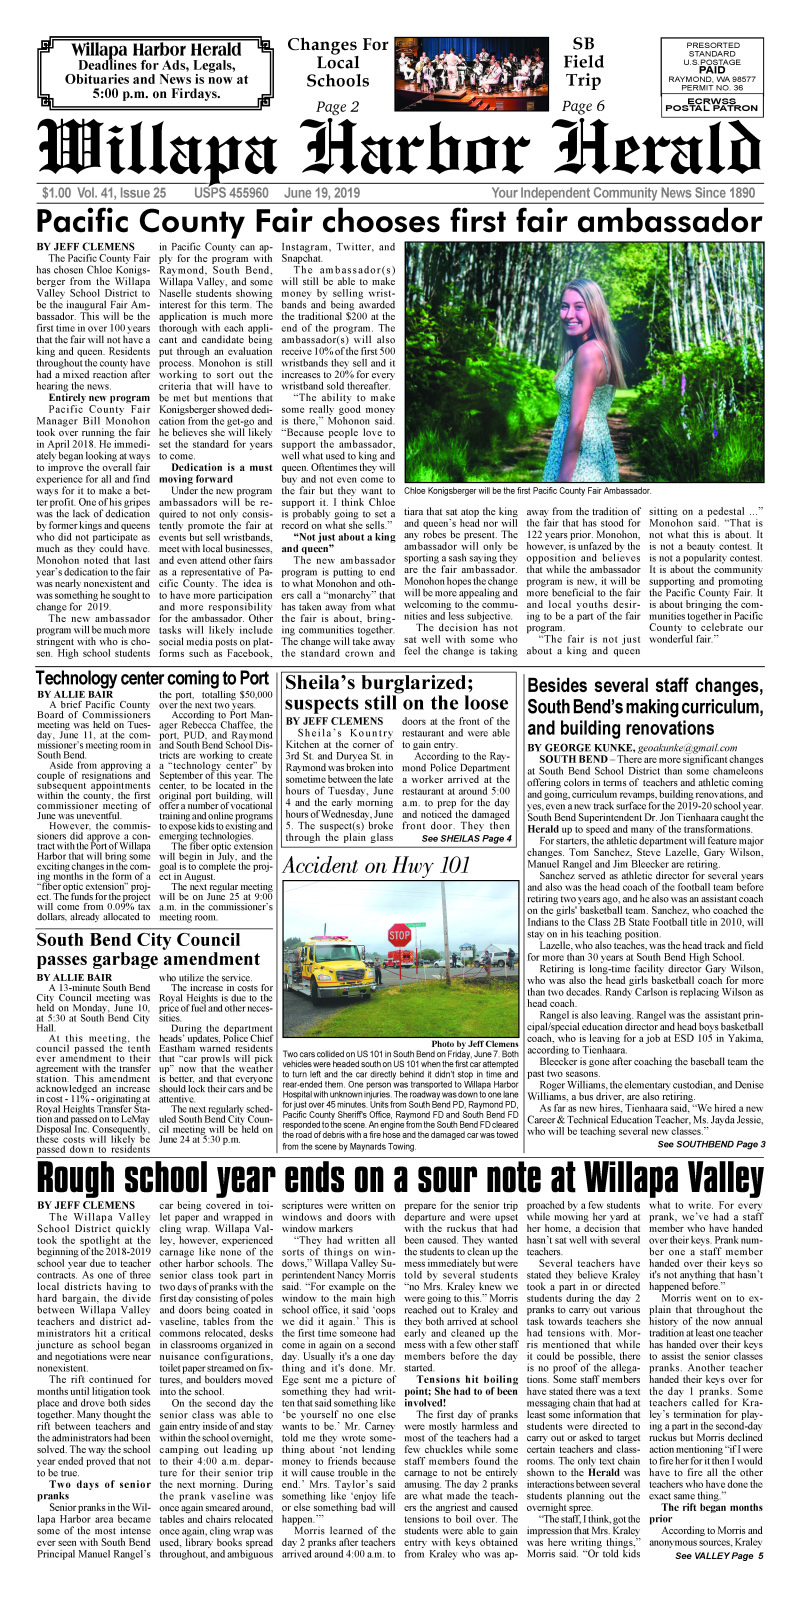 June 19, 2019 Willapa Harbor Herald